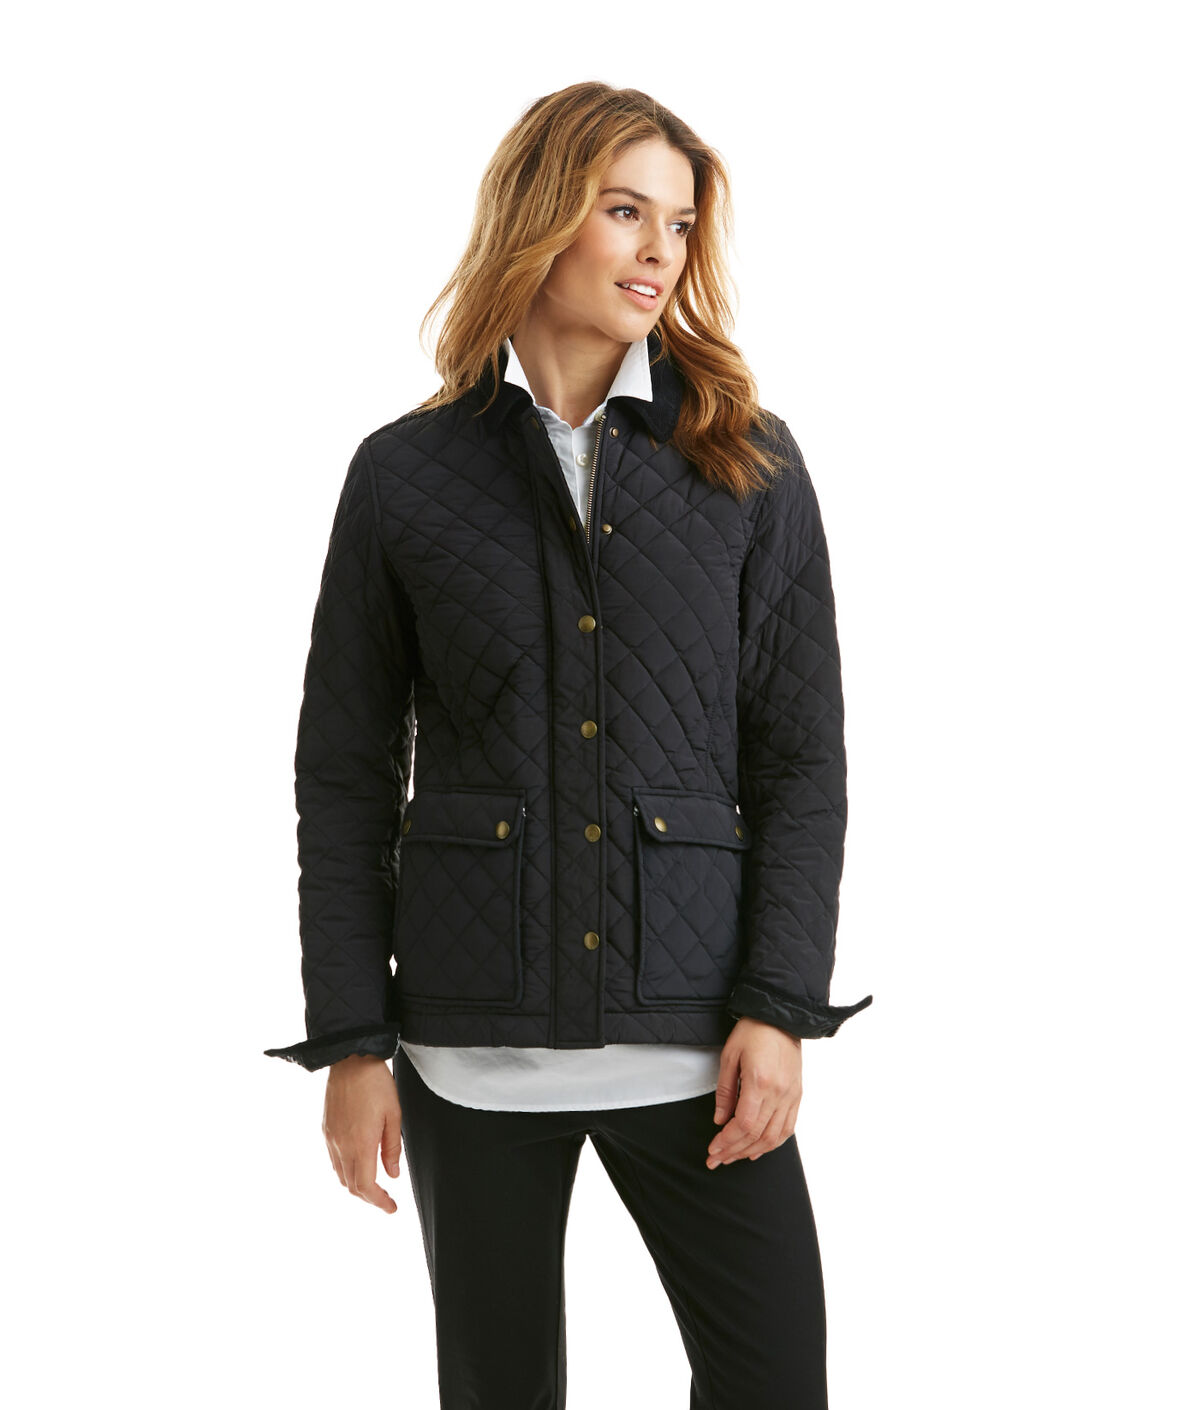 Shop Quilted Jacket At Vineyard Vines